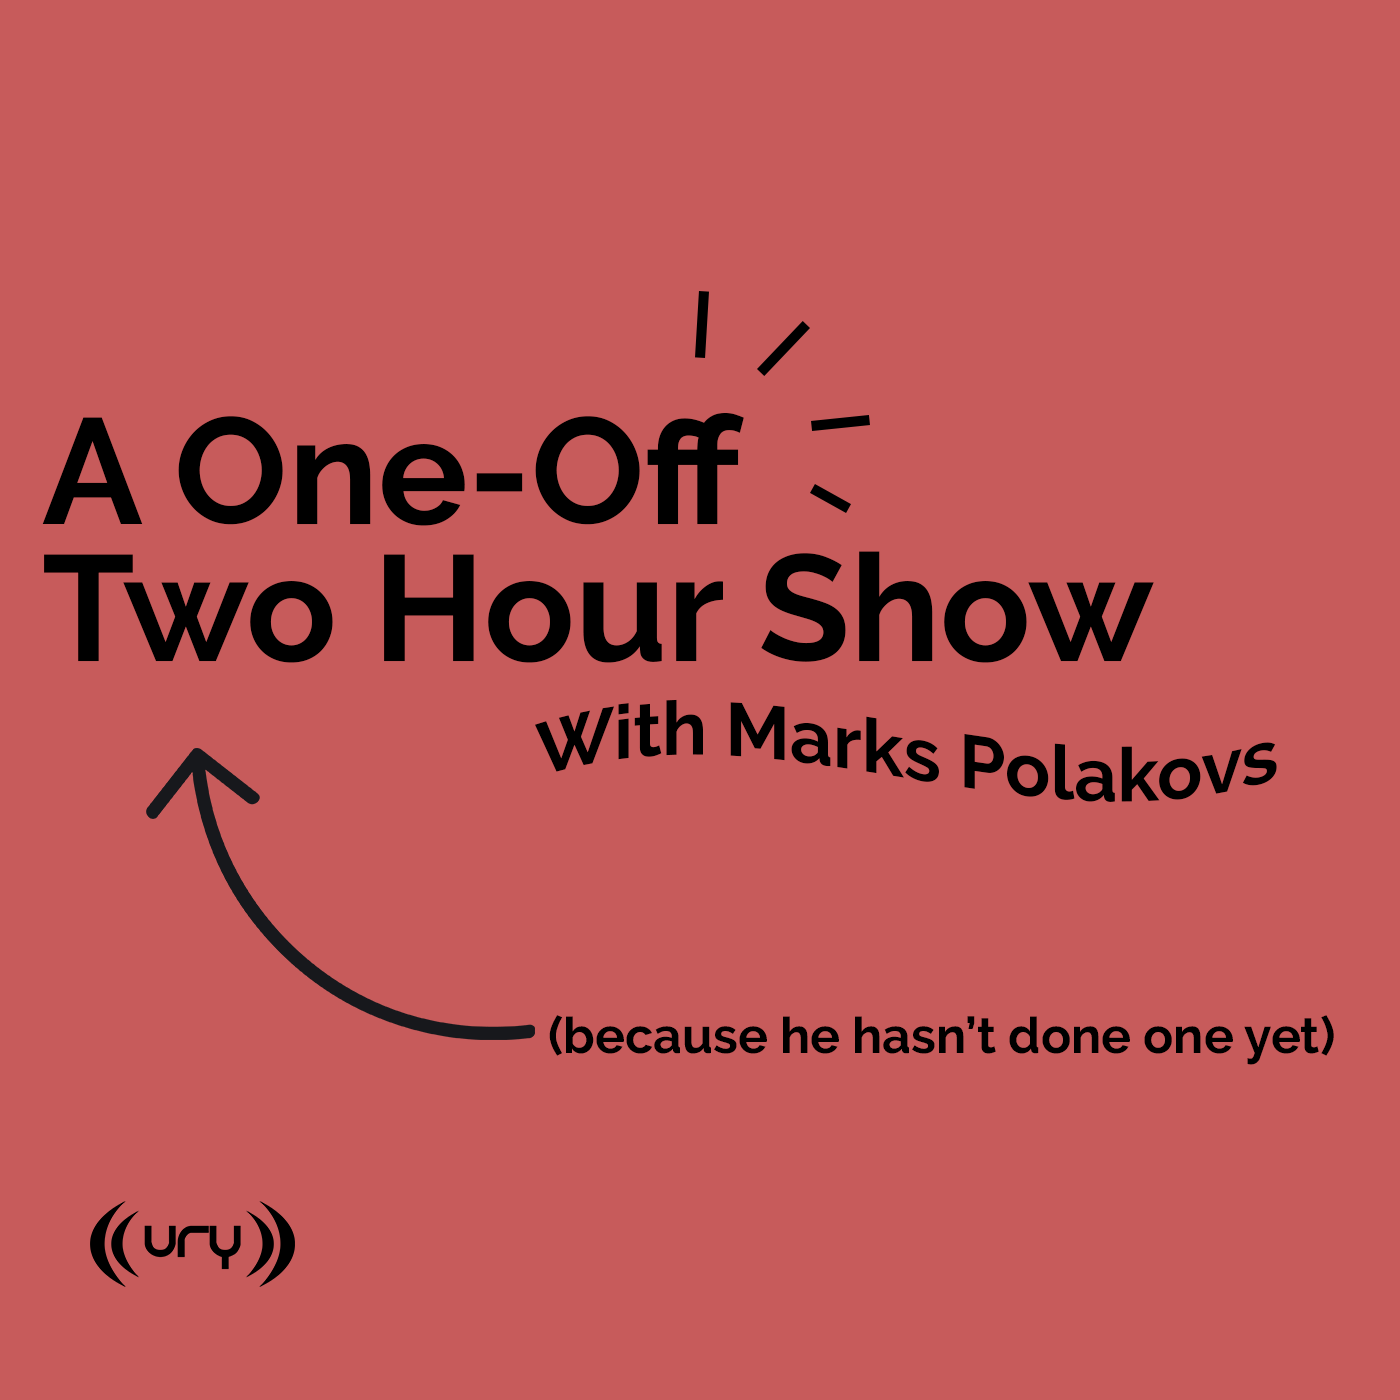 A One-Off Two Hour Show Logo